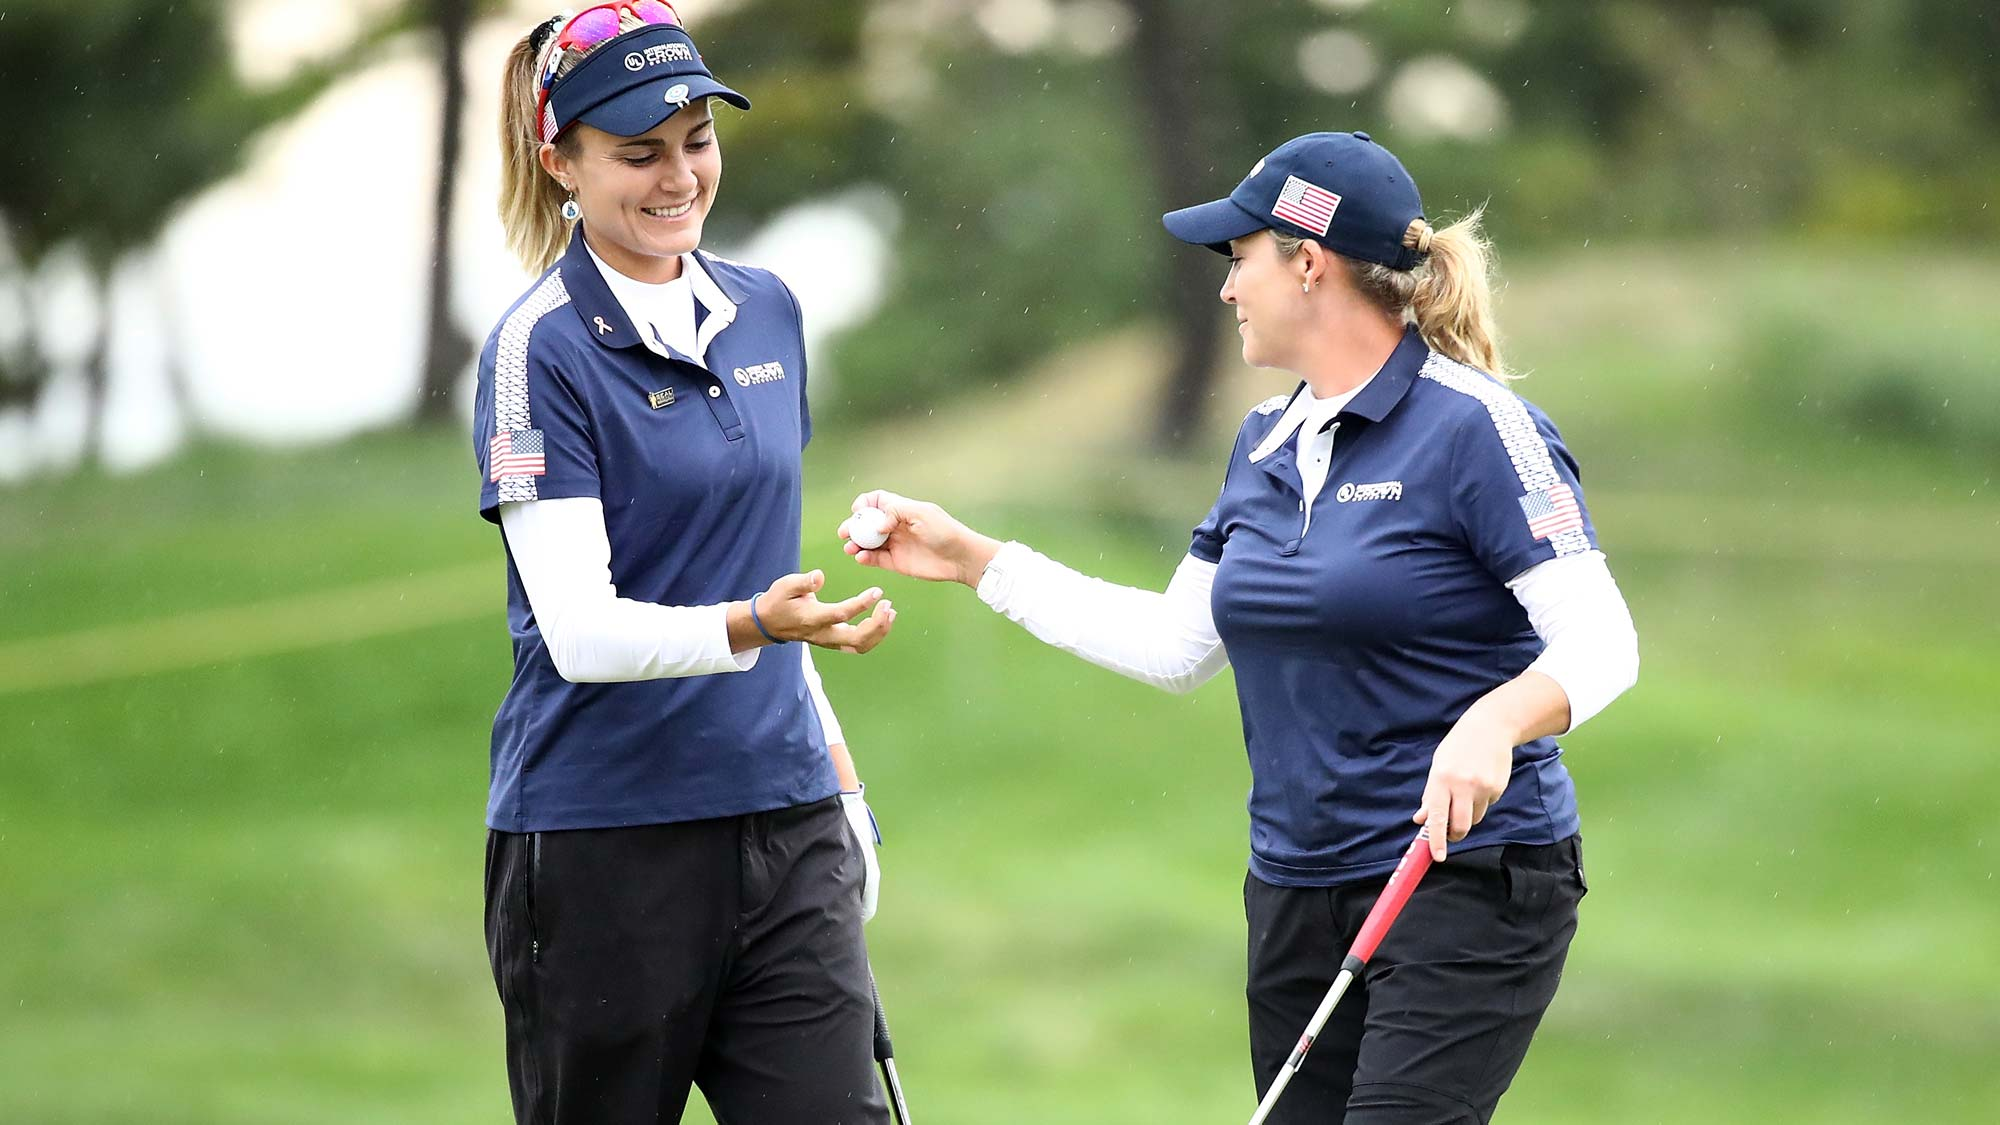 Lexi Thompson (L) and Cristie Kerr (R) of the United States celebrate on the 2nd green during the Pool B match between USA and Thailand on day two of the UL International Crown